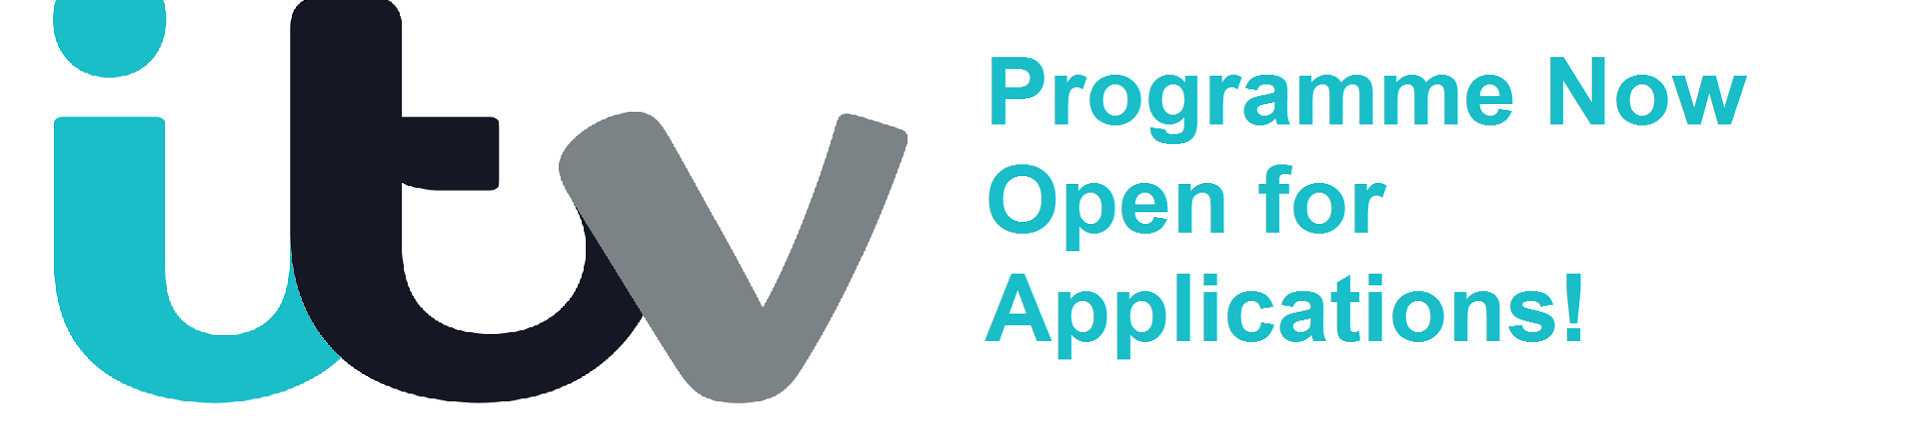 ITV Insight Programme Now Open for Applications!